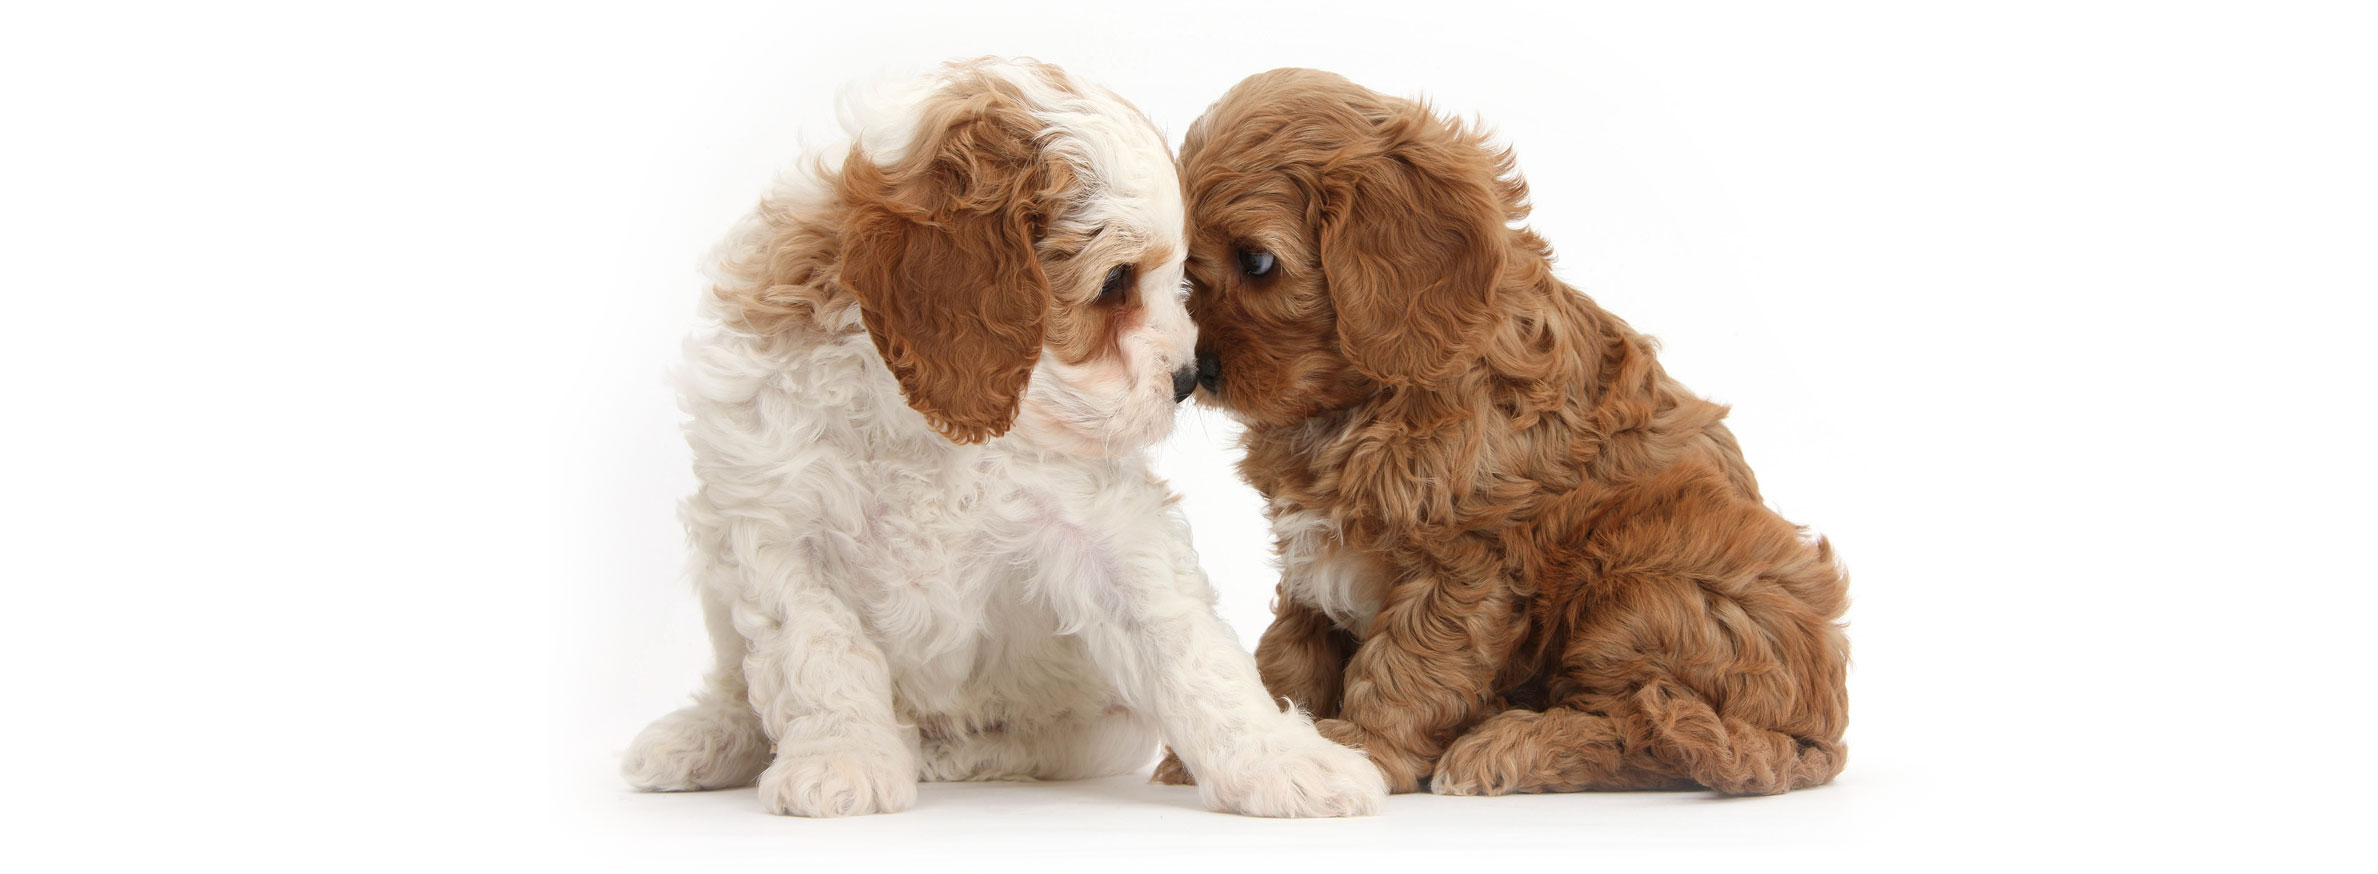 South Carolina labradoodle puppies